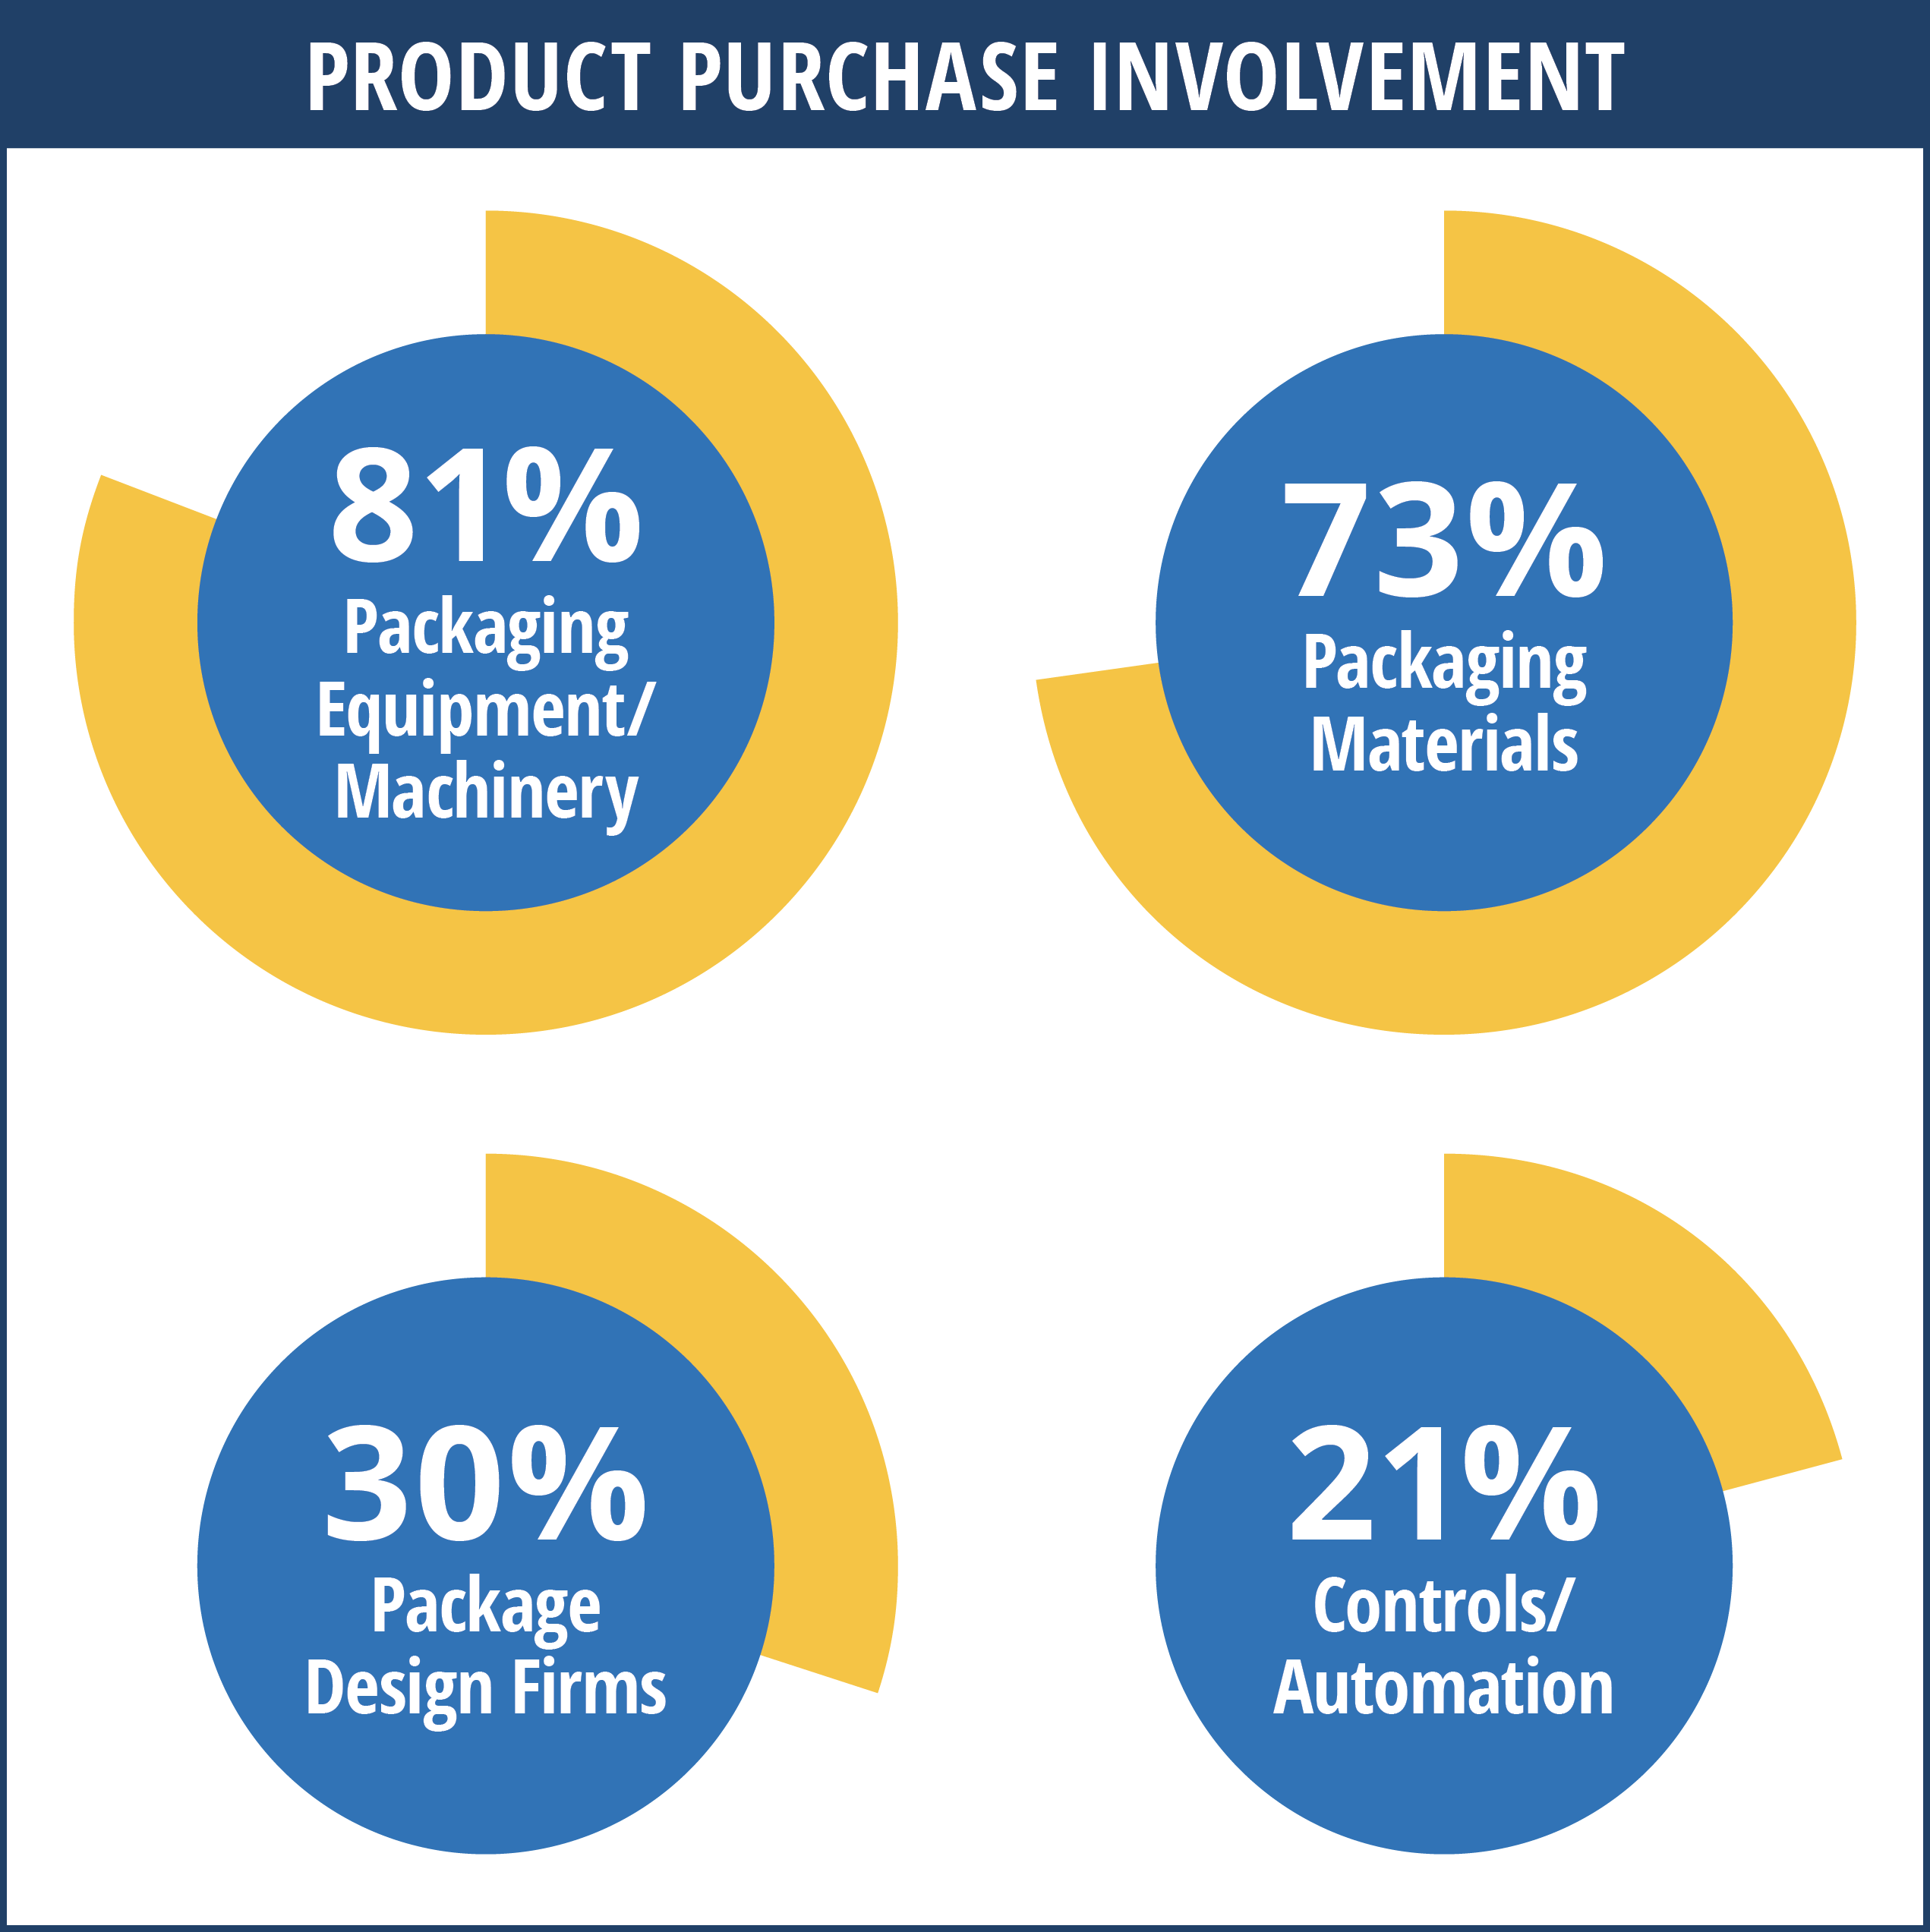 Product Purchase Involvement